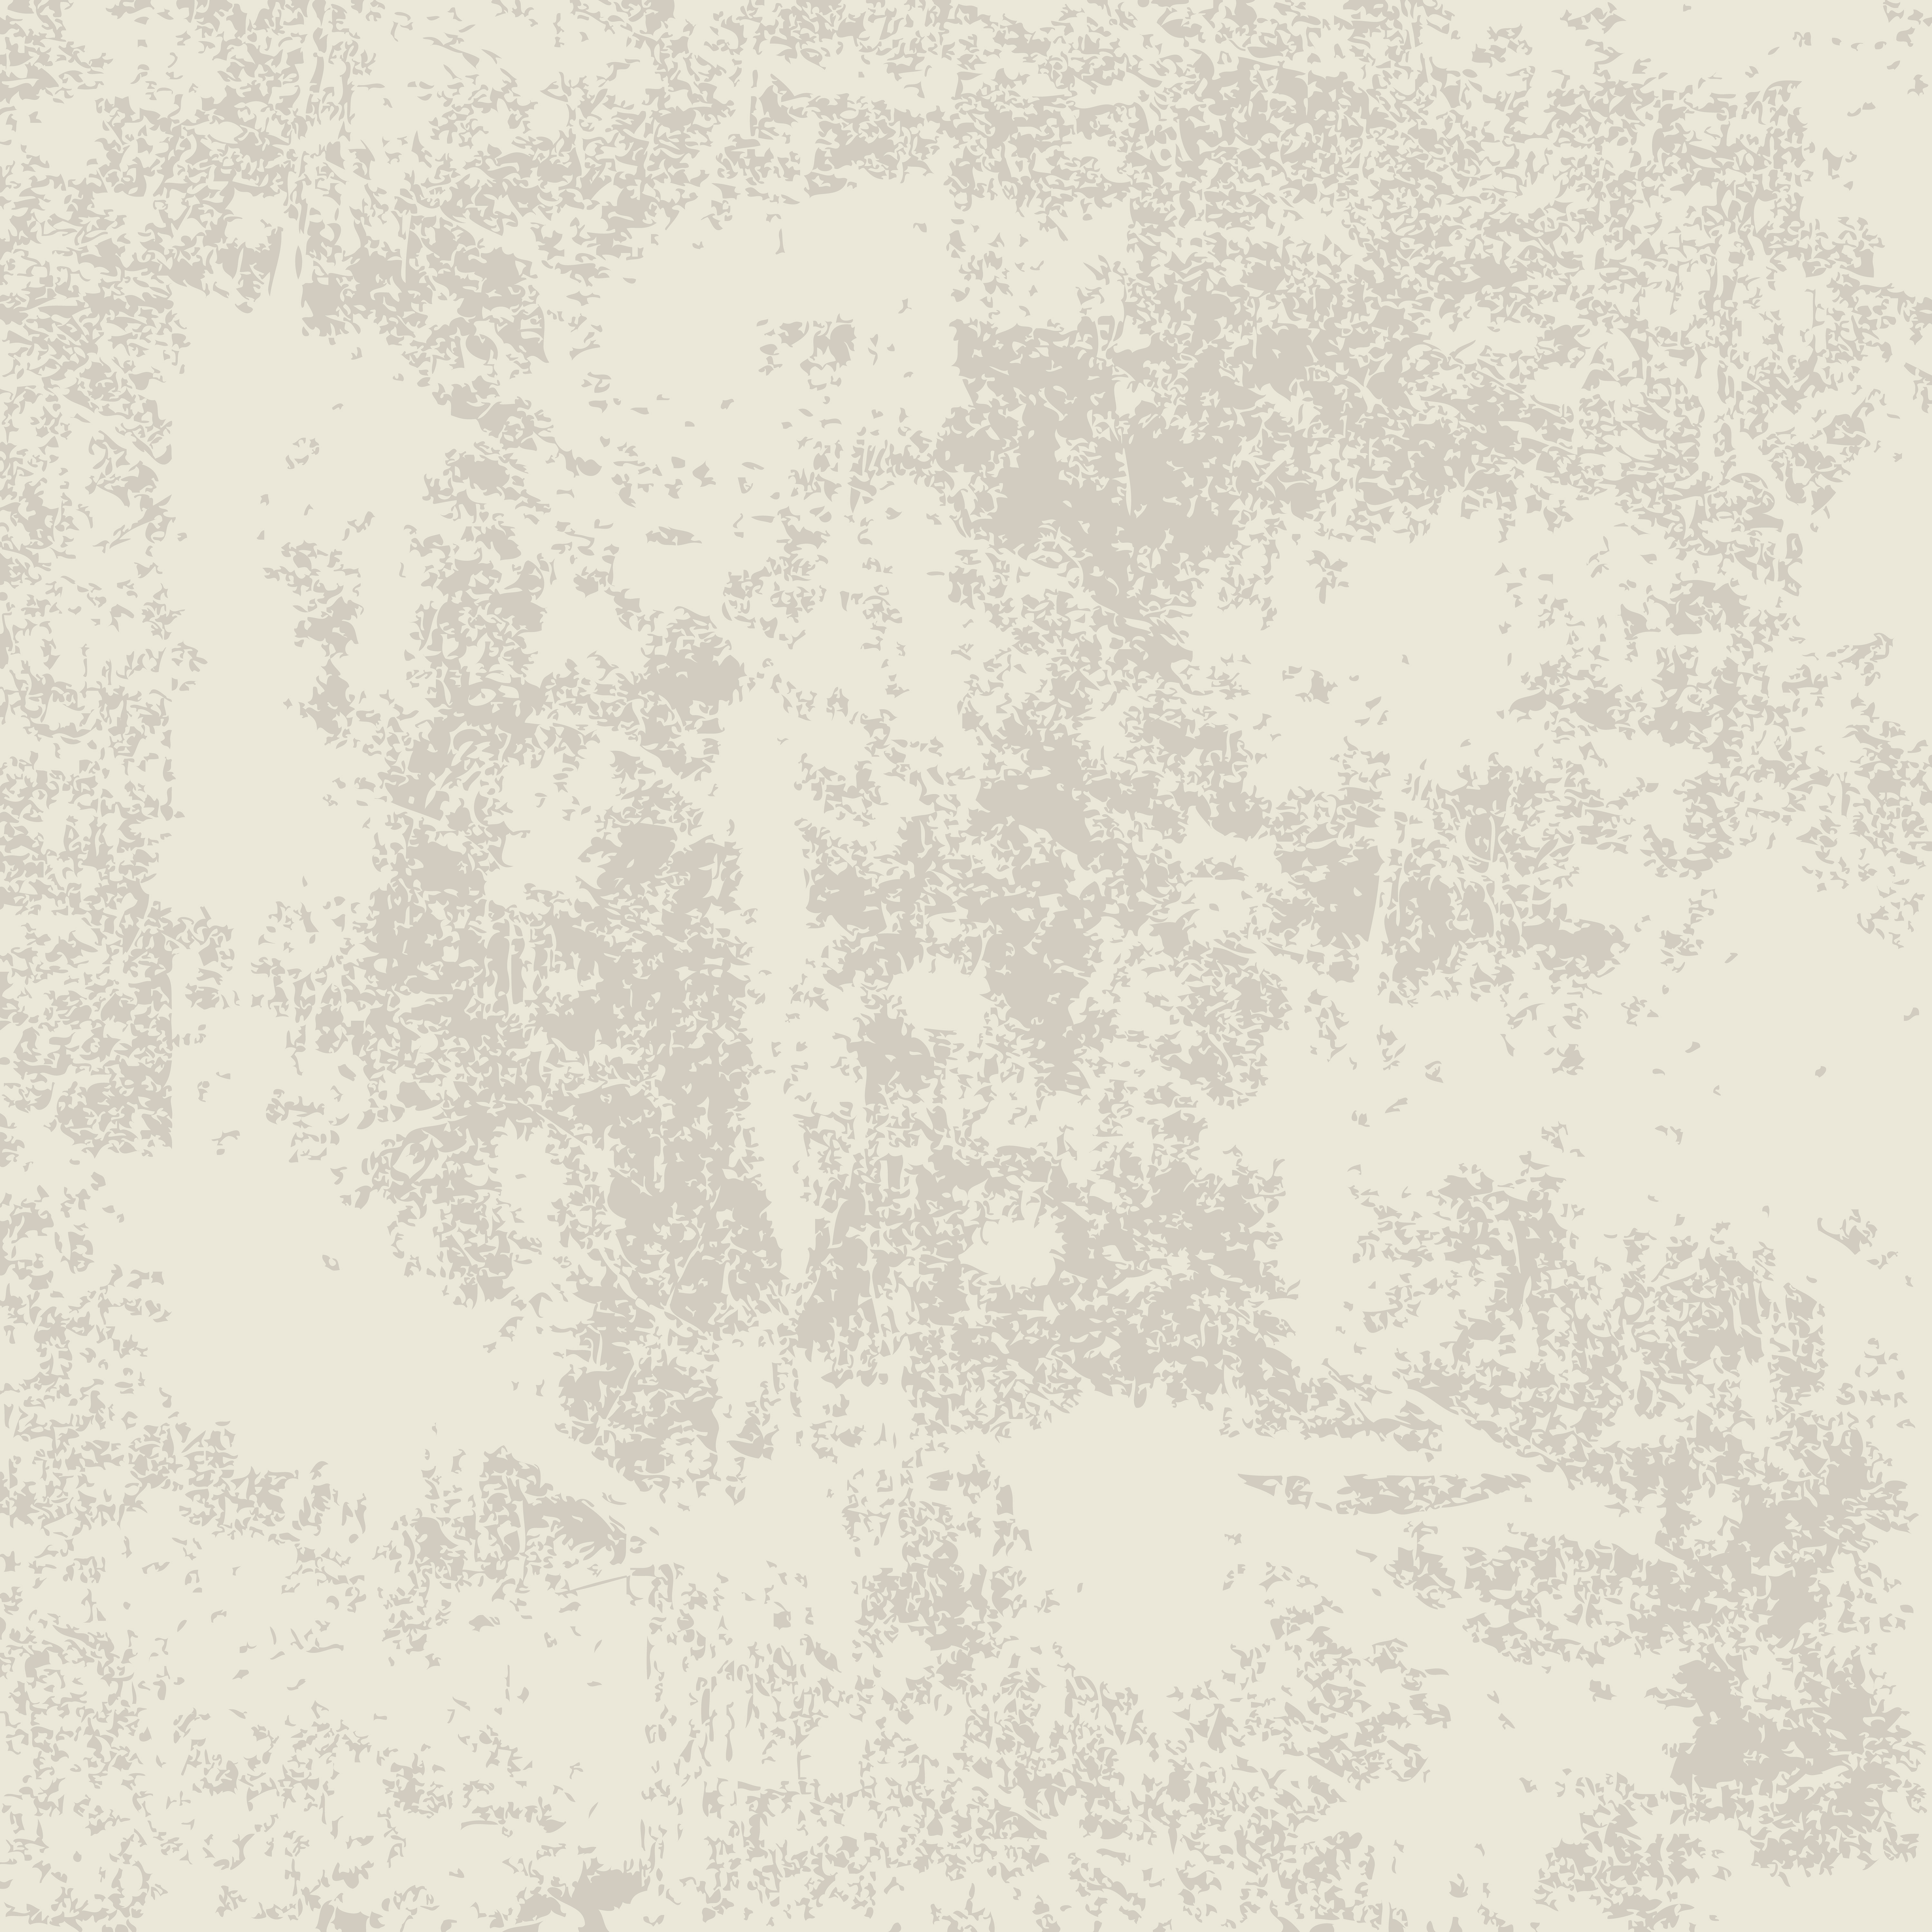 Background vintage clipart clip royalty free library Background clipart vintage, Background vintage Transparent FREE for ... clip royalty free library